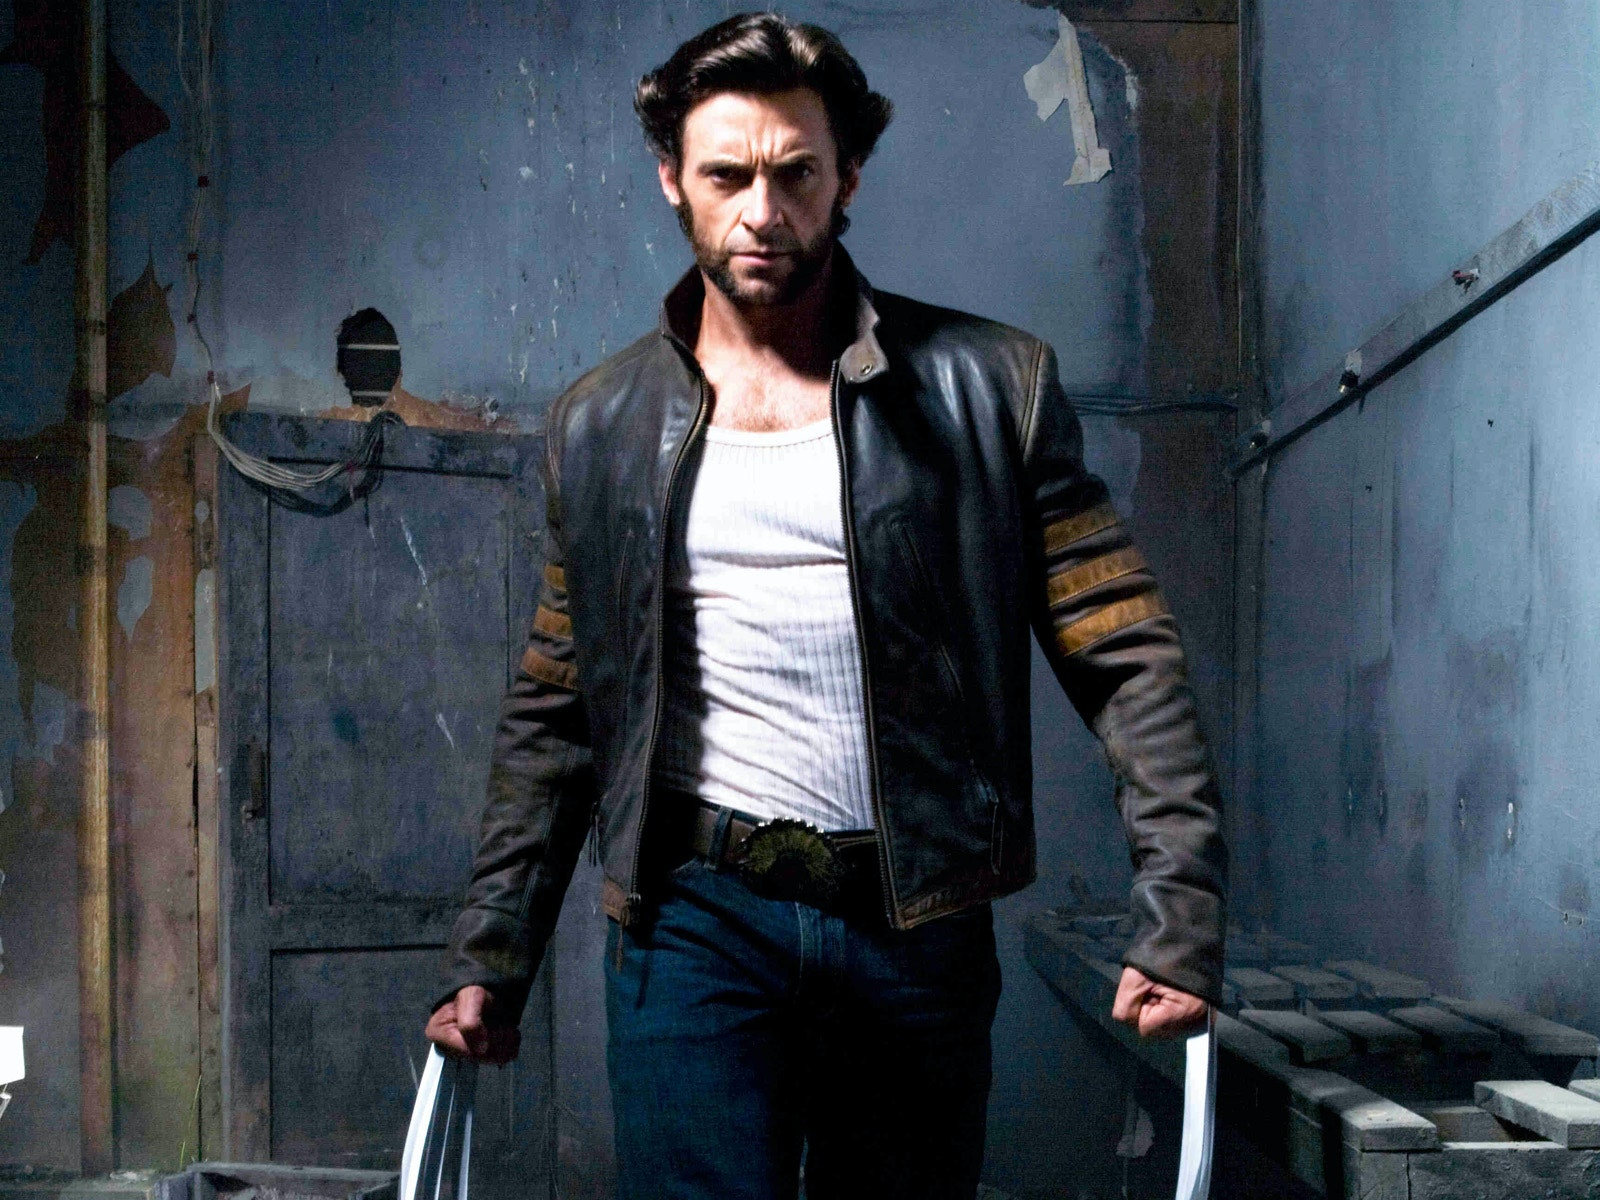 Hugh Jackman's final Wolverine is set for March 3